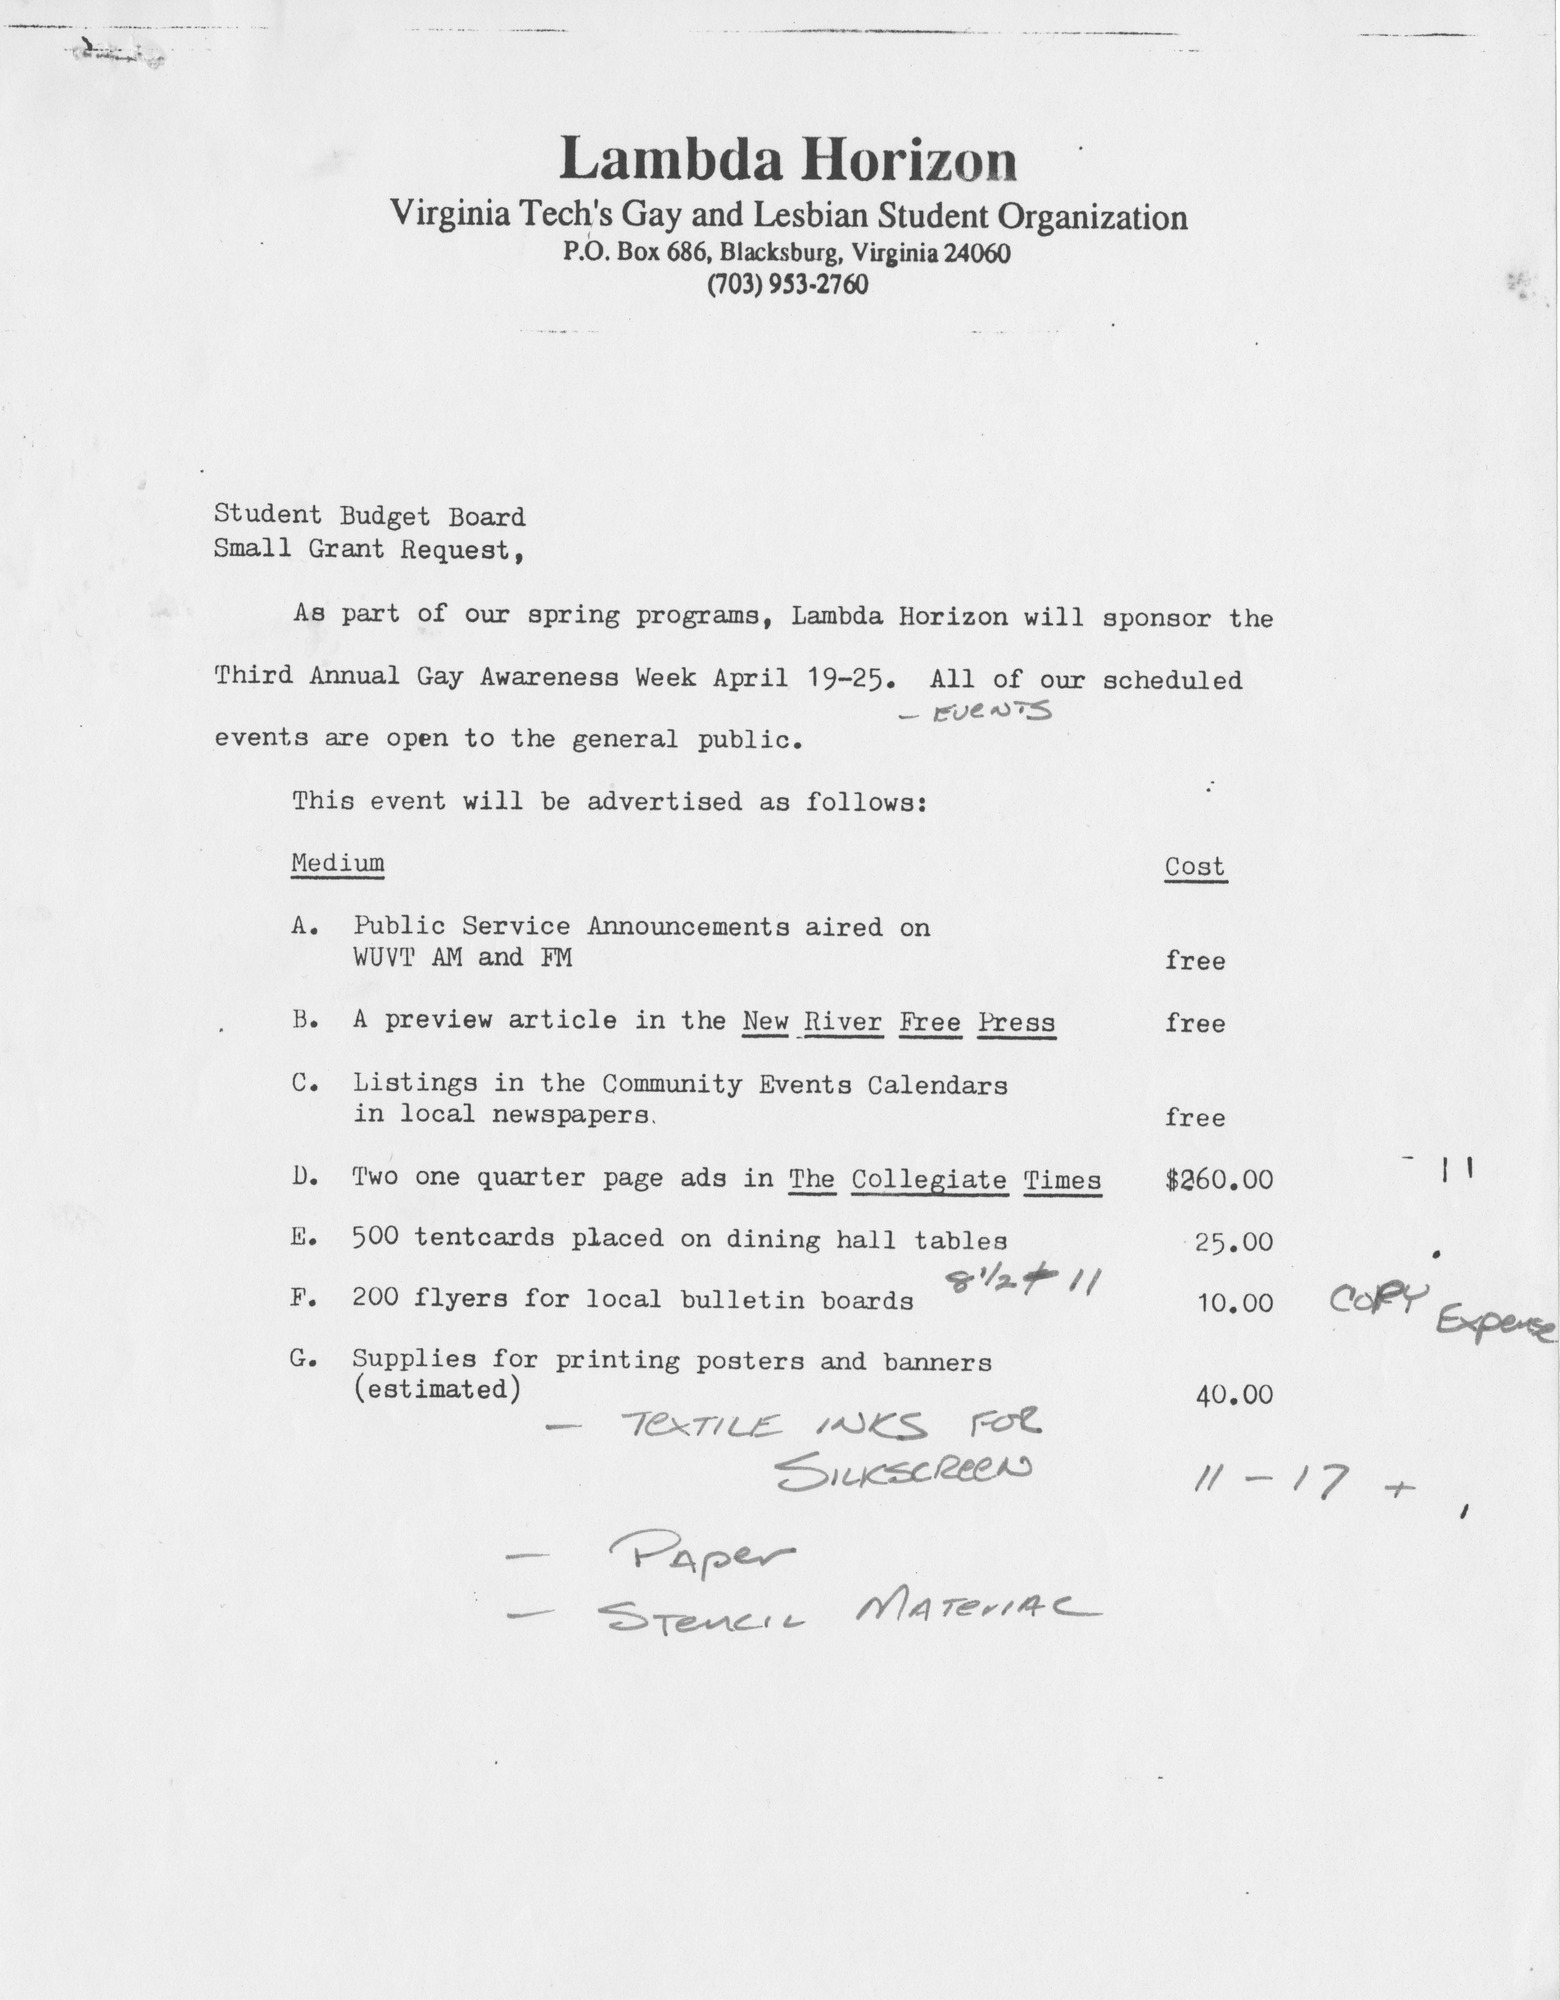 Ms2014-010_WeberMark_BudgetRequests_1987_03a.jpg